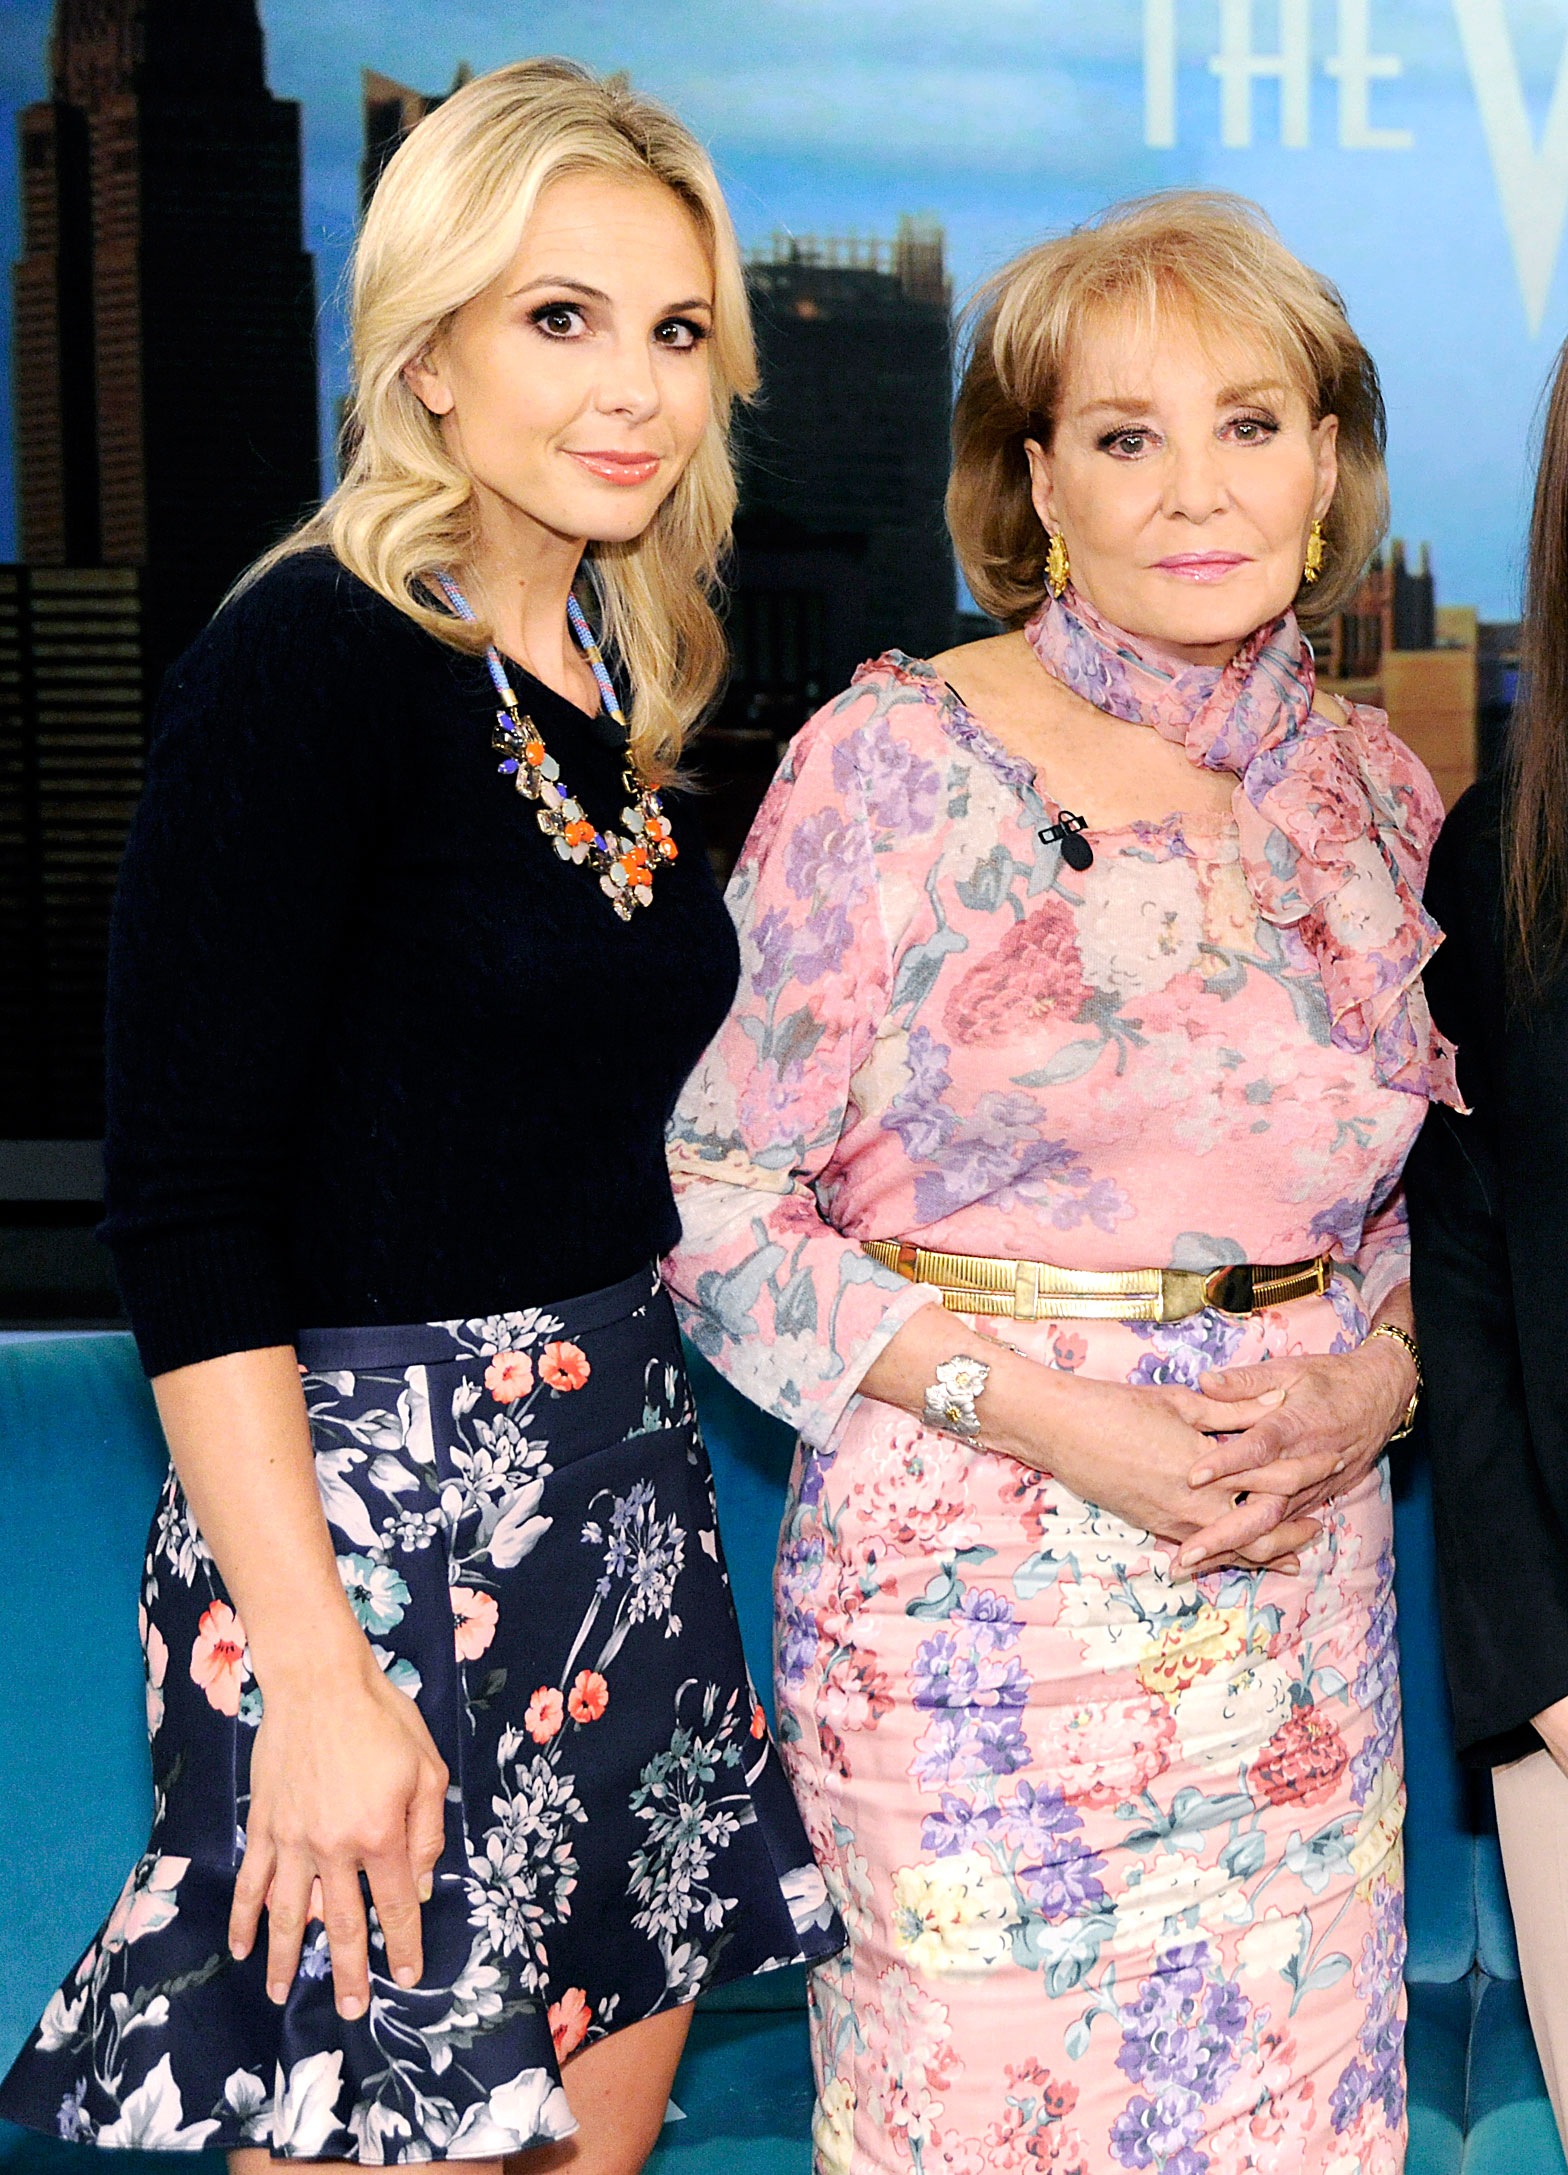 Elisabeth Hasselbeck Once Tried to Quit 'The View' After Barbara Walters Fight - Elisabeth Hasselbeck and Barbara Walters on 'The View'.